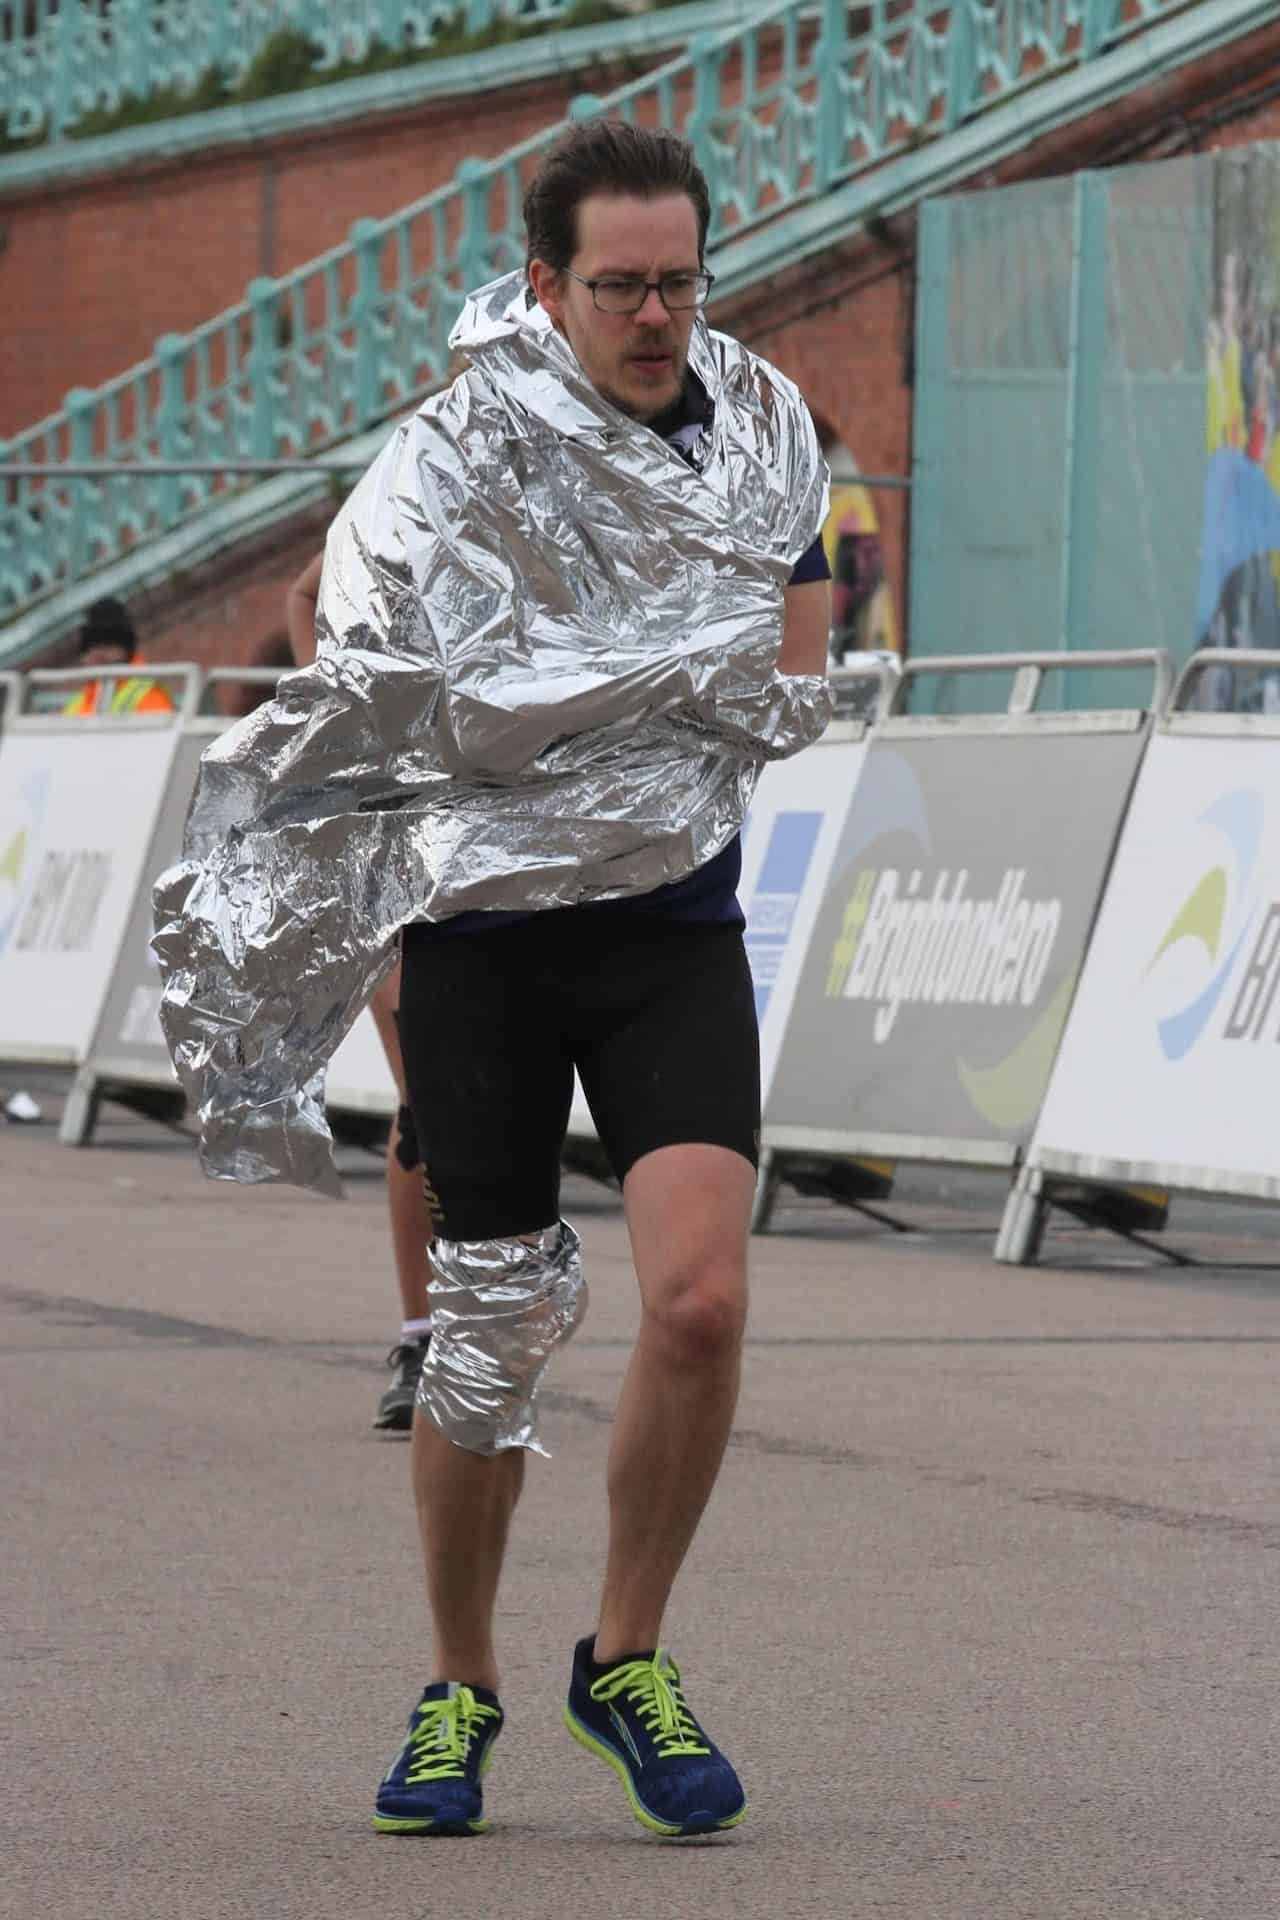 Carlos Eriksson wrapped in a silver blanket, pushing himself to finish the marathon.